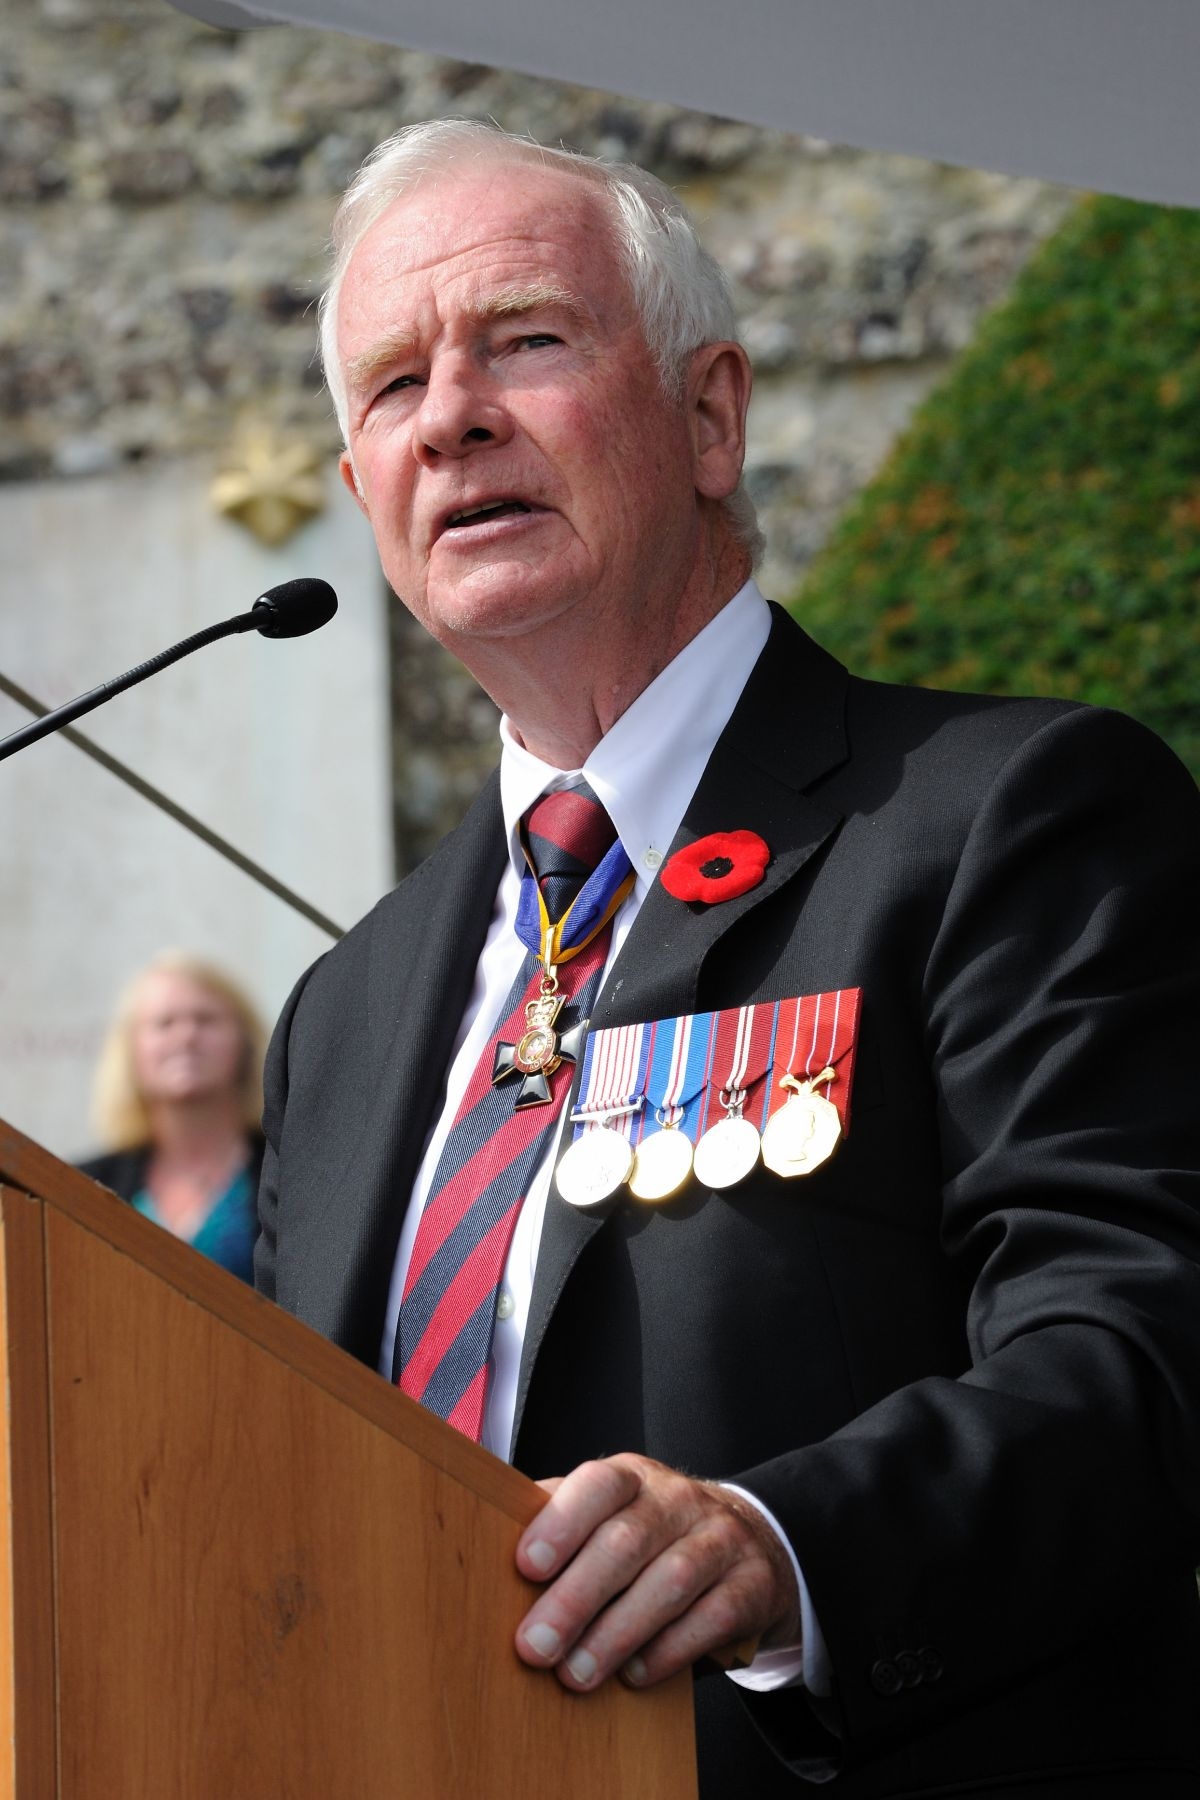 "The Governor General delivered a speech on the occasion: ""By all accounts—even those given by enemy soldiers—the Canadians who fought here were courageous, skilled and dedicated. As we mark this 70th anniversary of the raid on Dieppe, let us pay tribute to the sacrifices made by those brave soldiers. And let us honour the freedom for which they fought by renewing our dedication to building a more peaceful, fair and just world."""